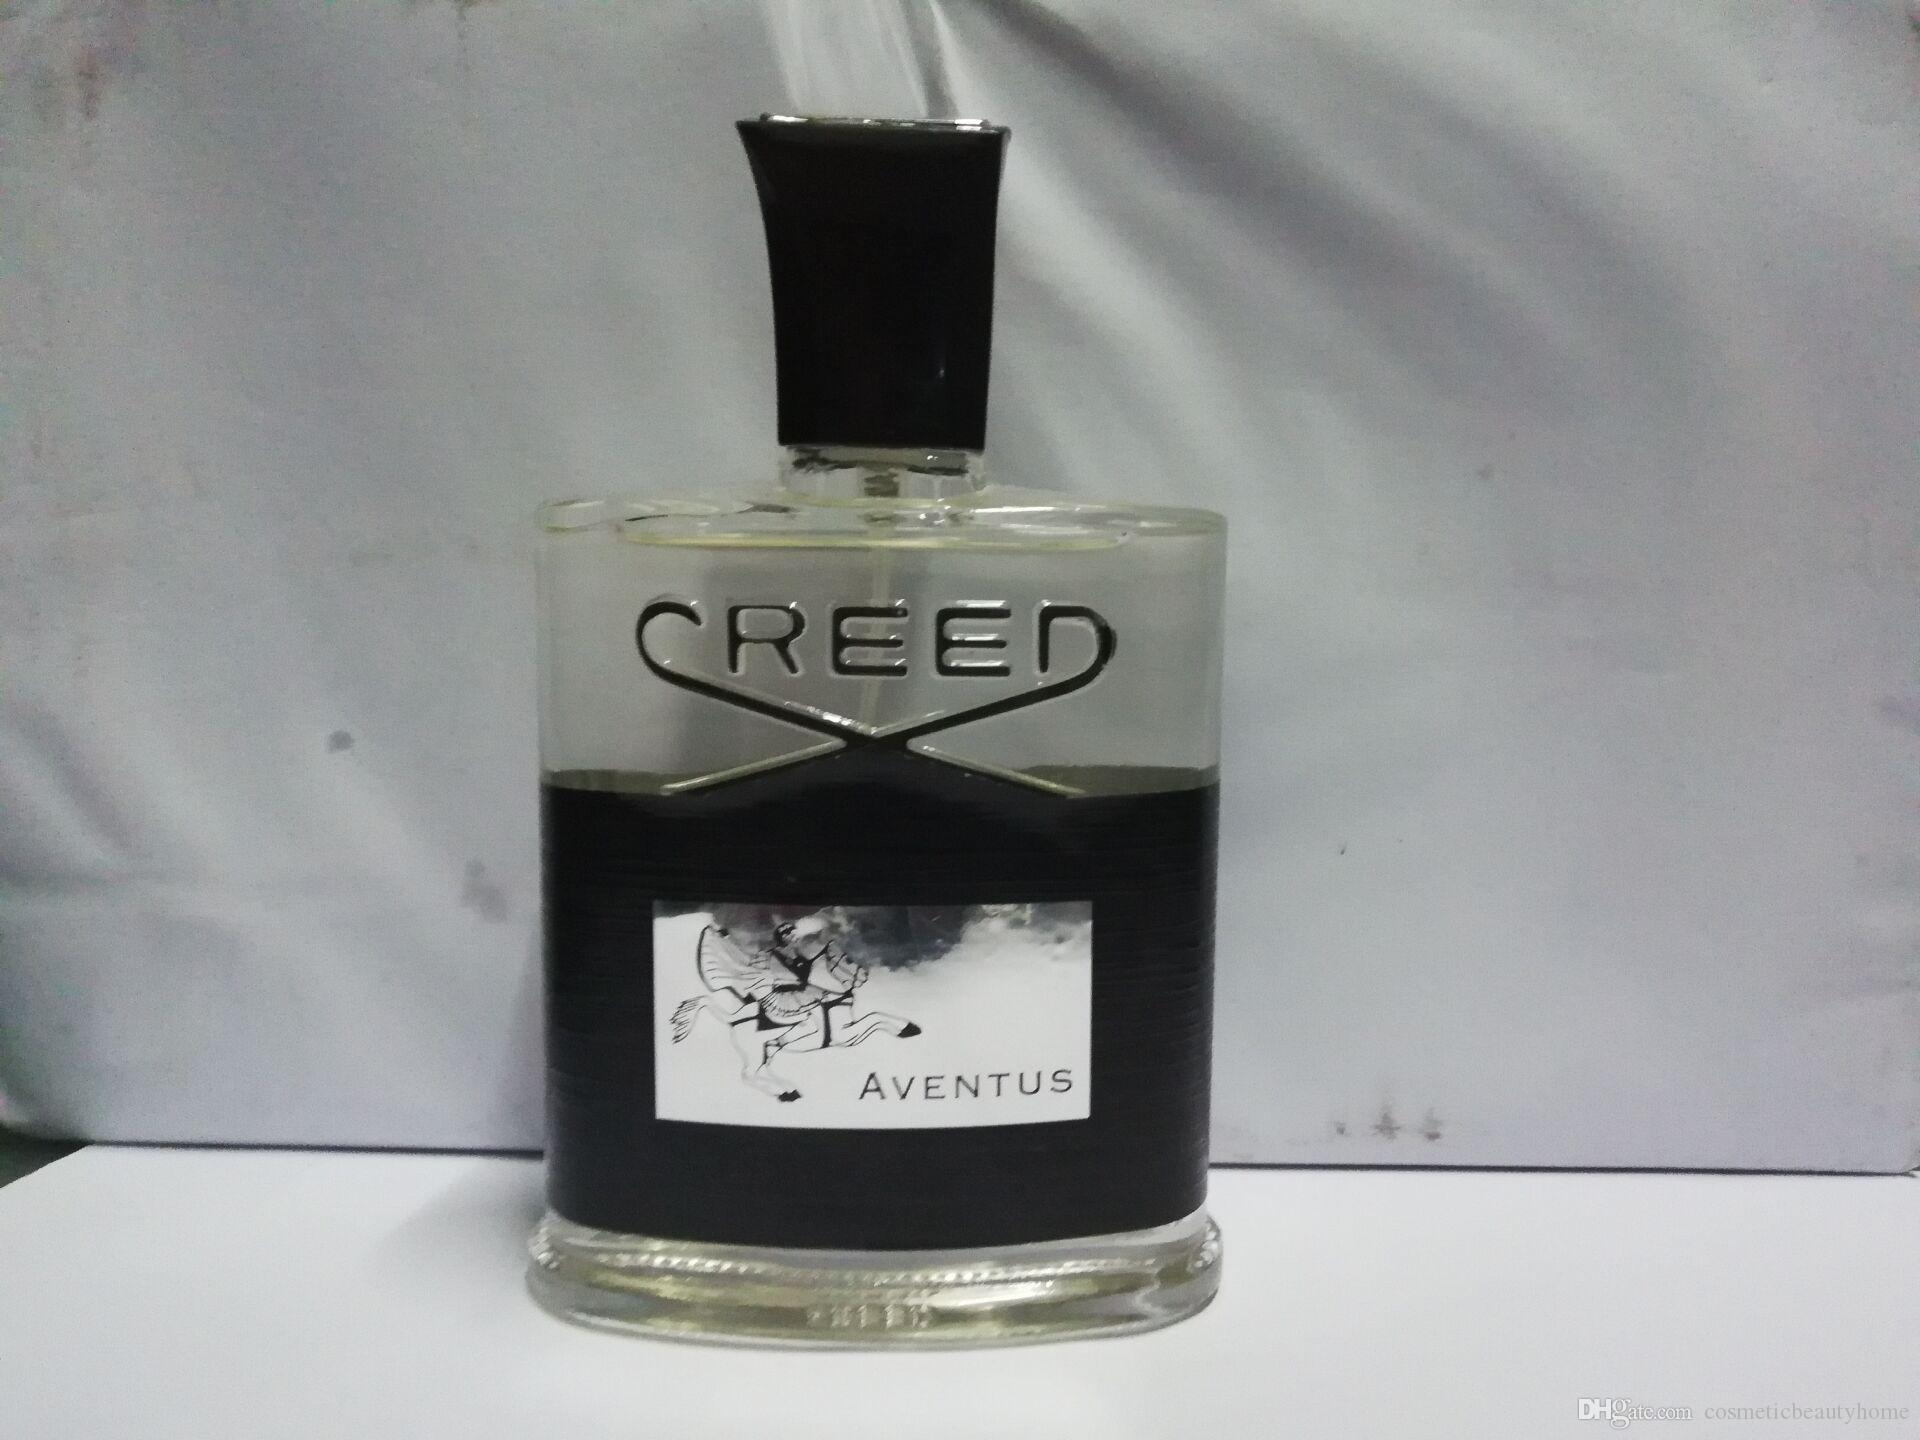 Creed perfume samples online